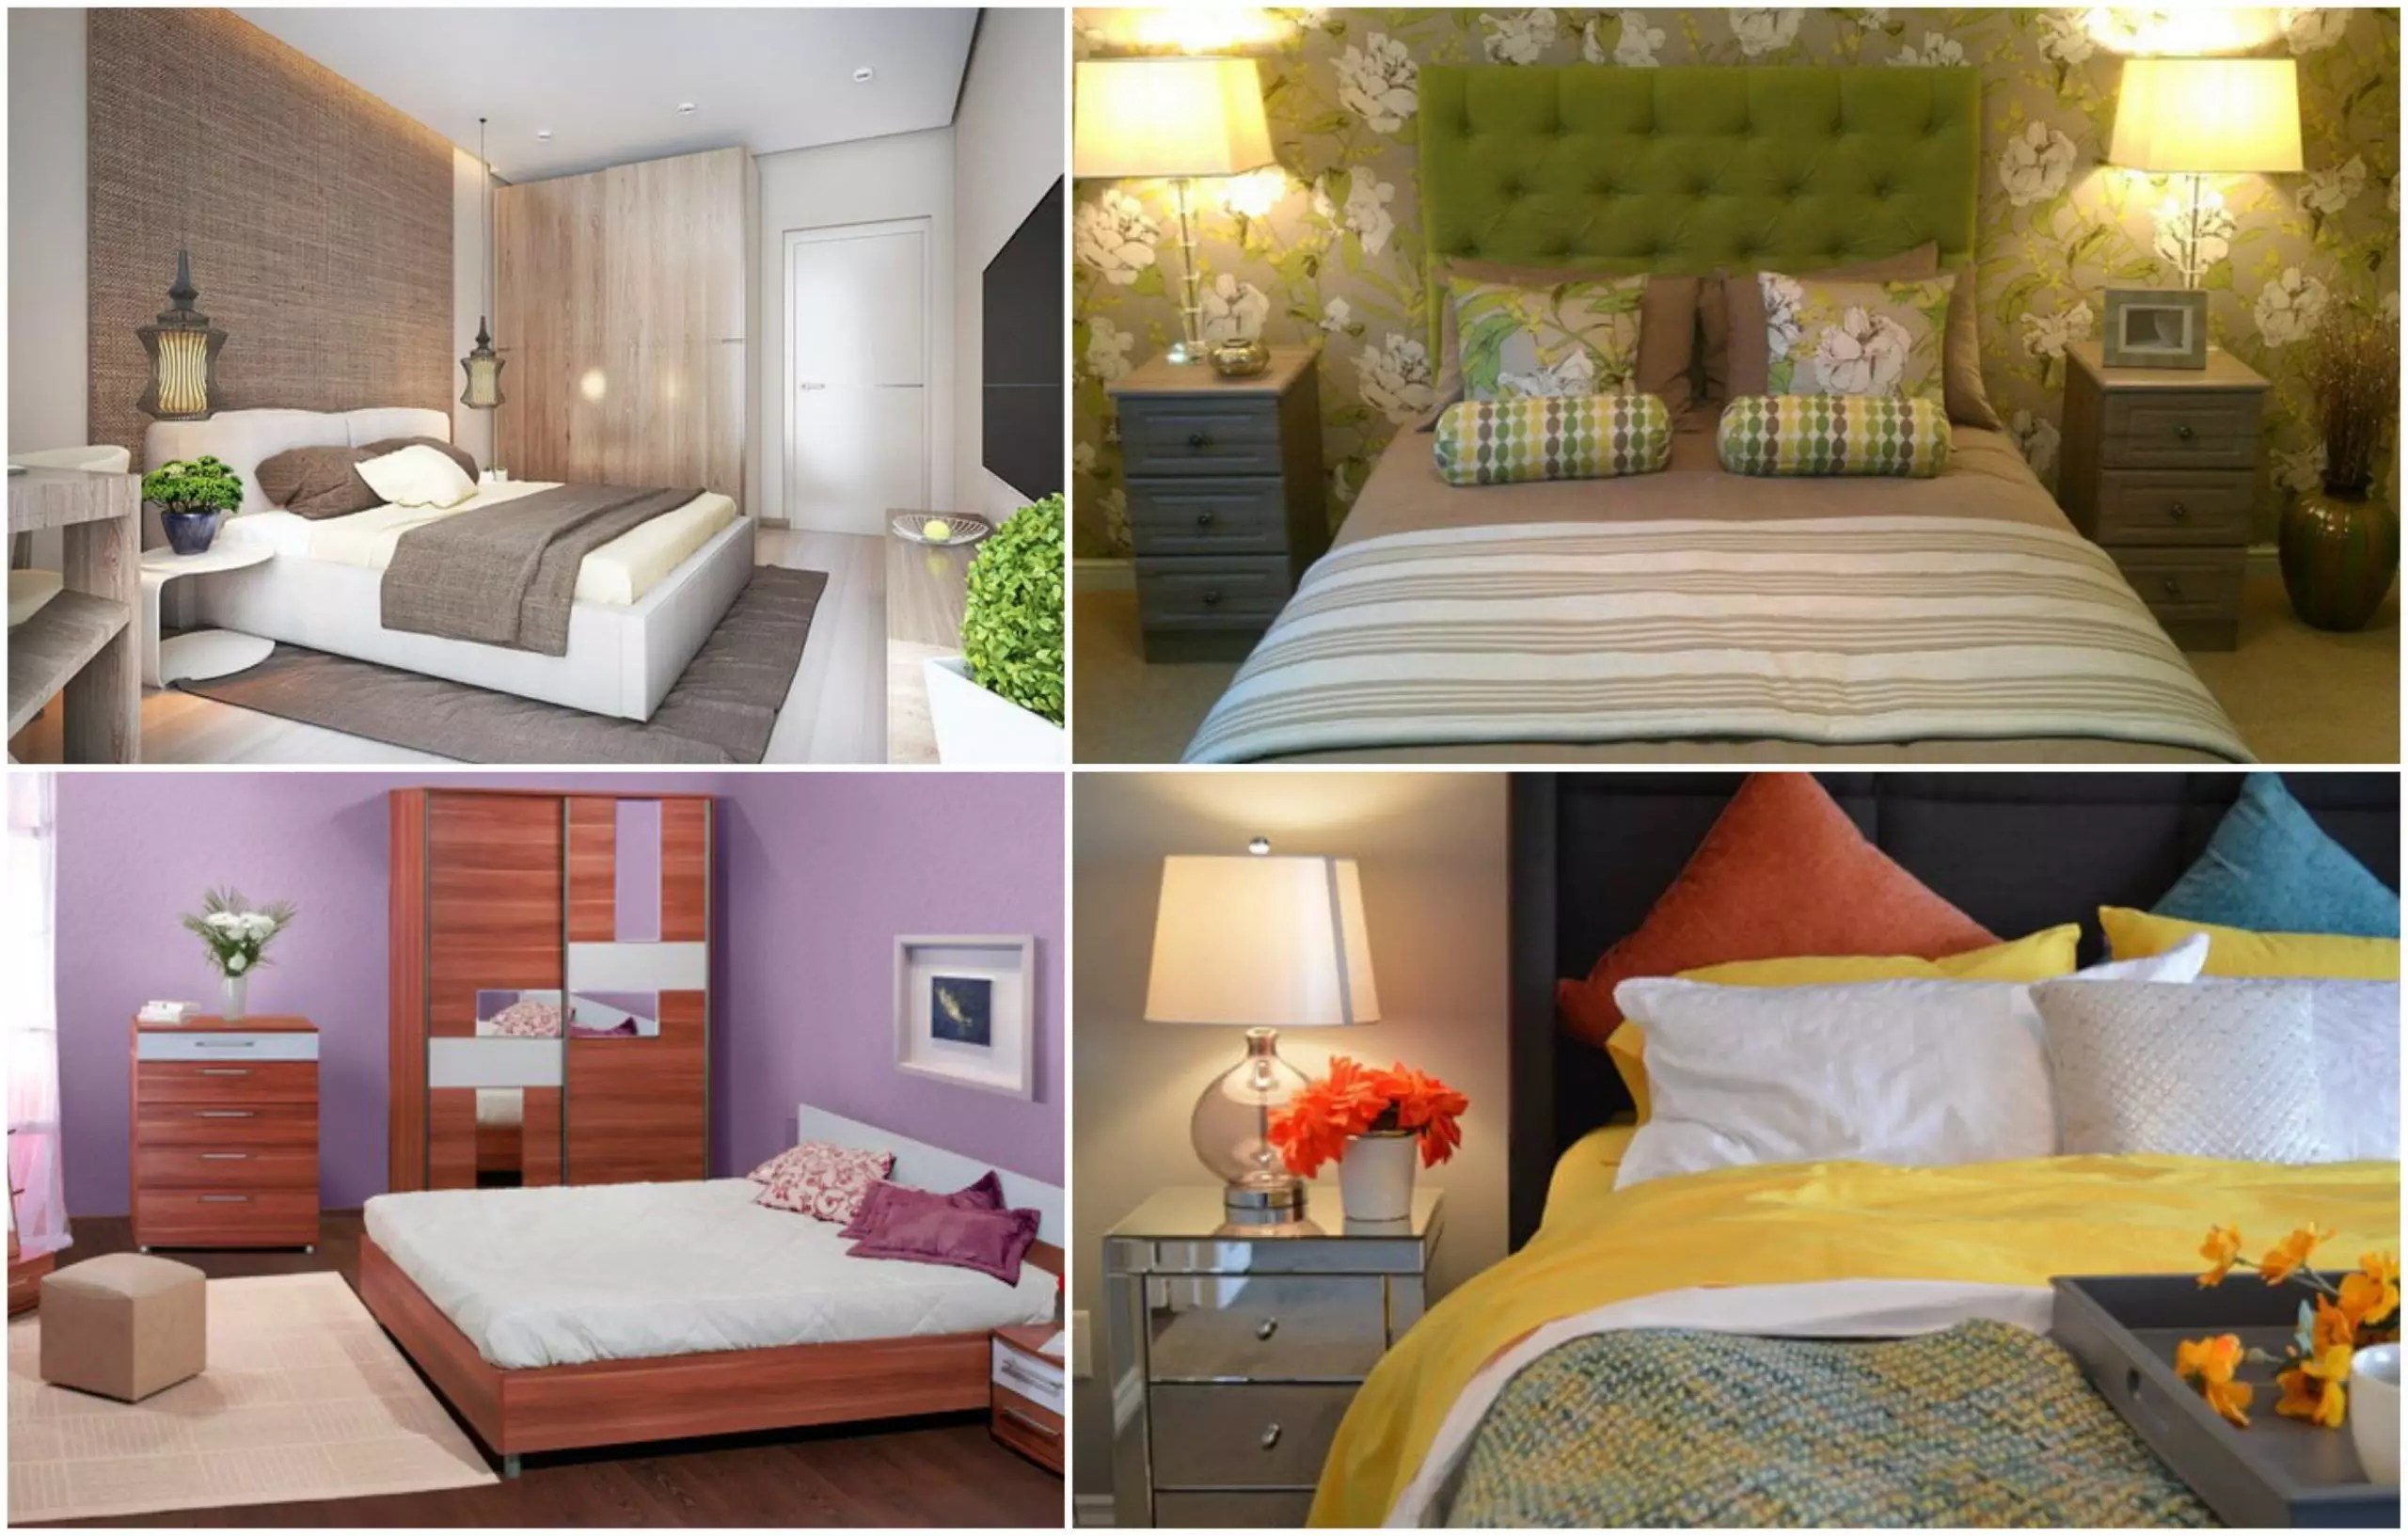 02/12/2015· research has found that even looking at pictures of nature improves our mood. The Biggest Bedroom Decorating Trends For 2020 - World